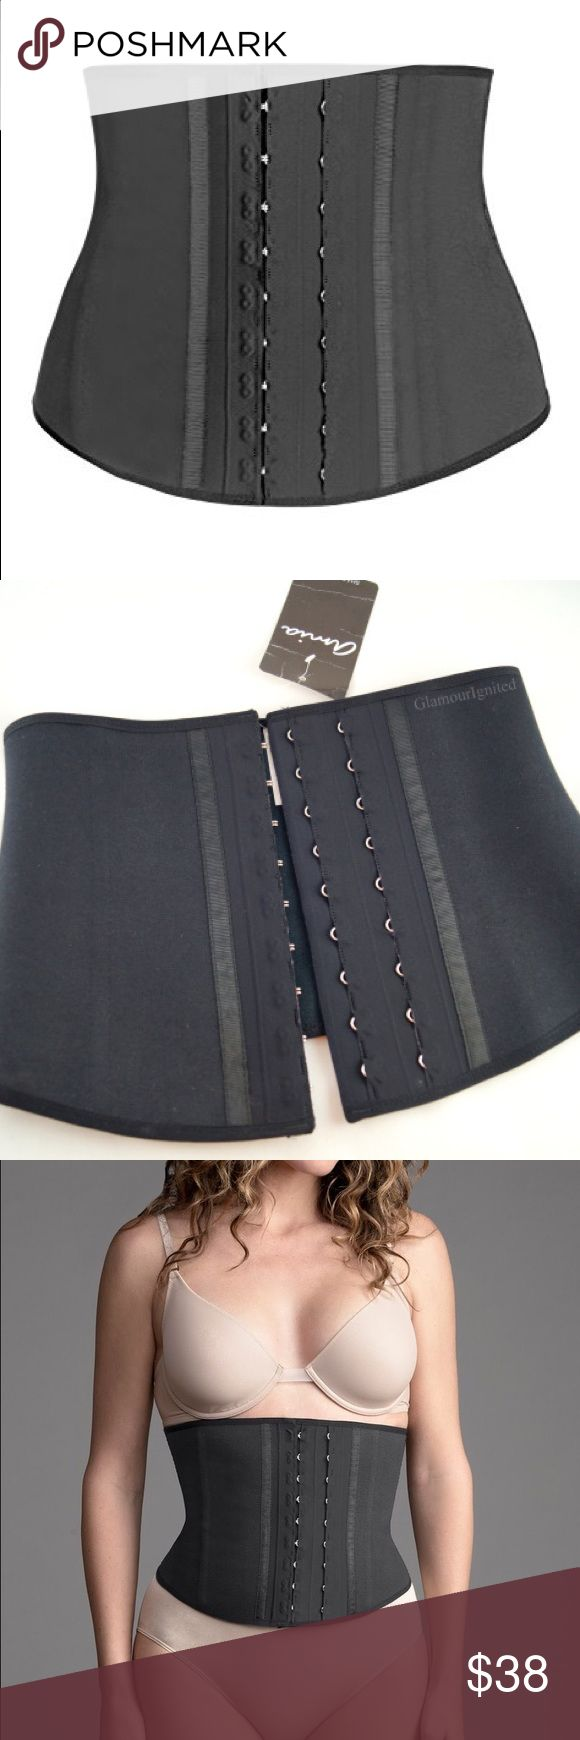 Brand new waist trainer that Kim Kardashian uses Active band waist trainer corset sculpts 2-3 inches from your waistline while boosting the intensity of physical activity (yes, you can wear it to the gym). It helps you sweat harder around your midsection with a durable latex core for firm, comfortable support. You can also wear it underneath clothing! Hook and eye closures, flexi-bonding, cotton lining. This is the one that the Kardashians rave about! amia Intimates & Sleepwear Shapewear